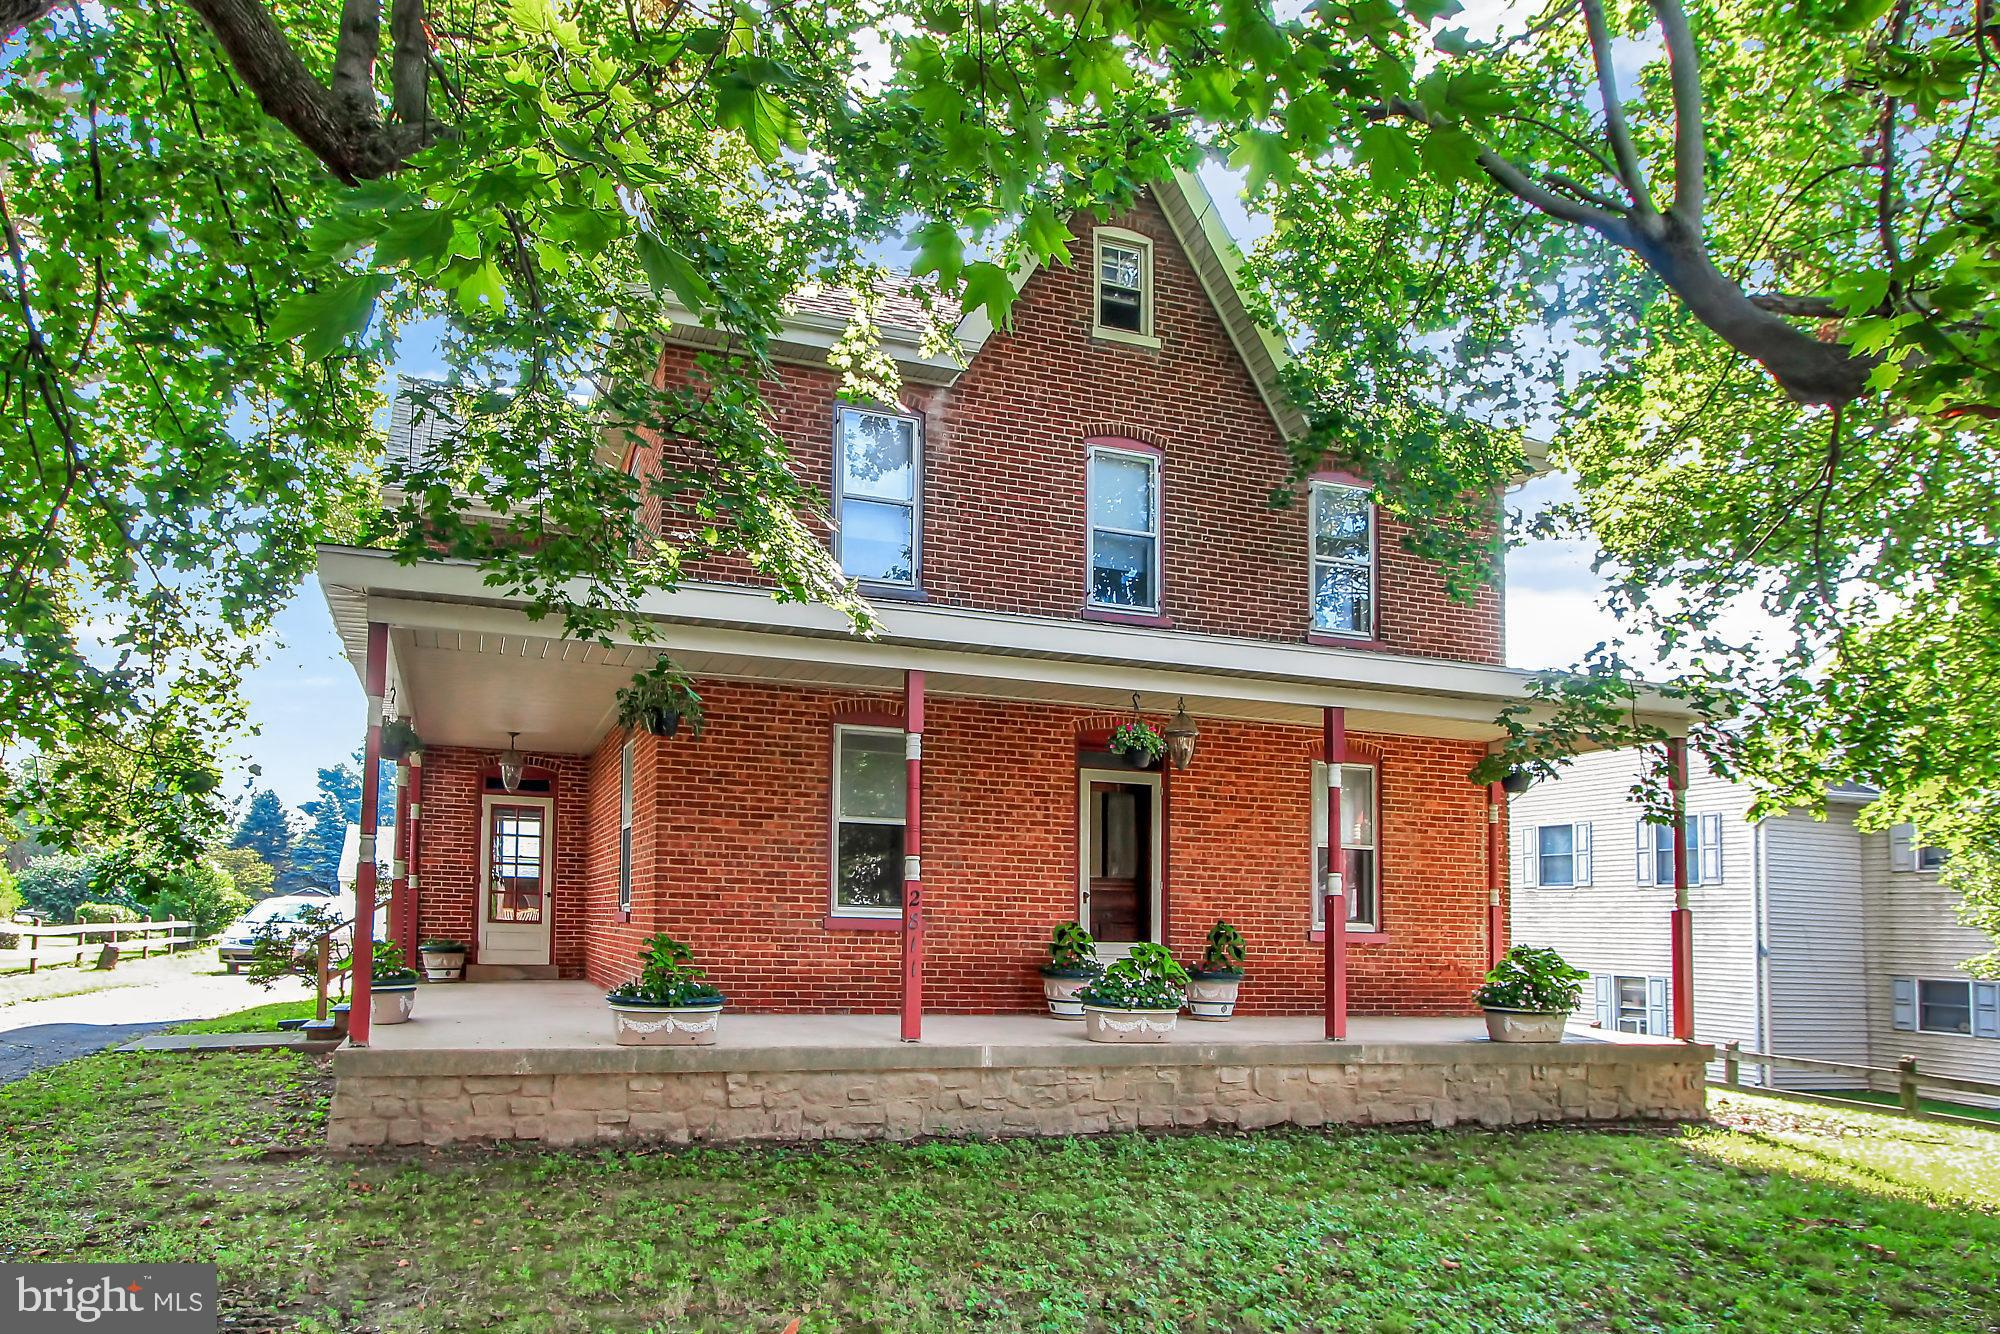 2811 WILLOW STREET PIKE, WILLOW STREET, PA 17584